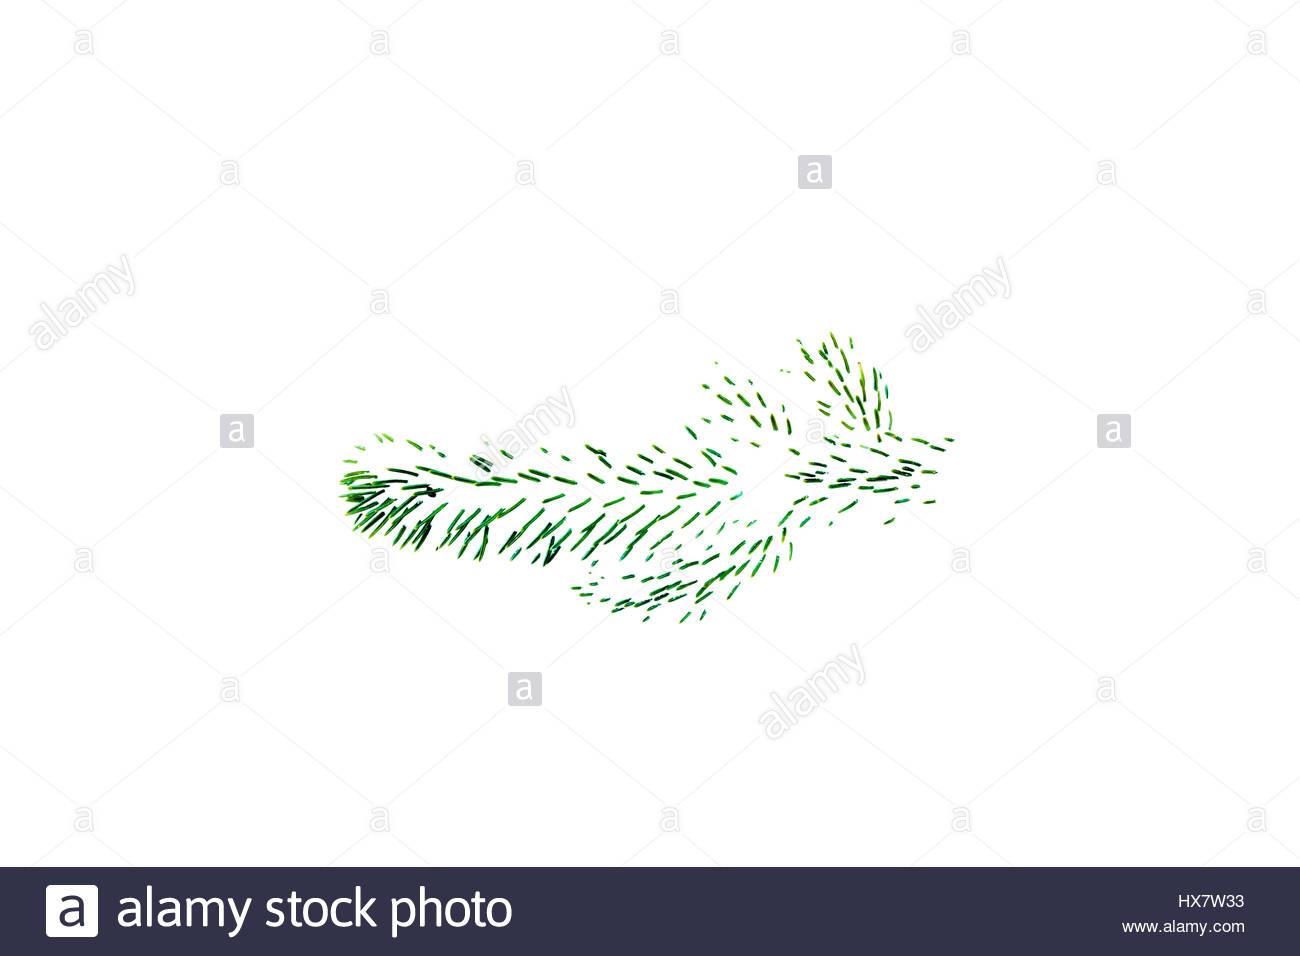 Fir needles covered with snow after a winter snowfall Abies balsamea balsam fir - Stock Image